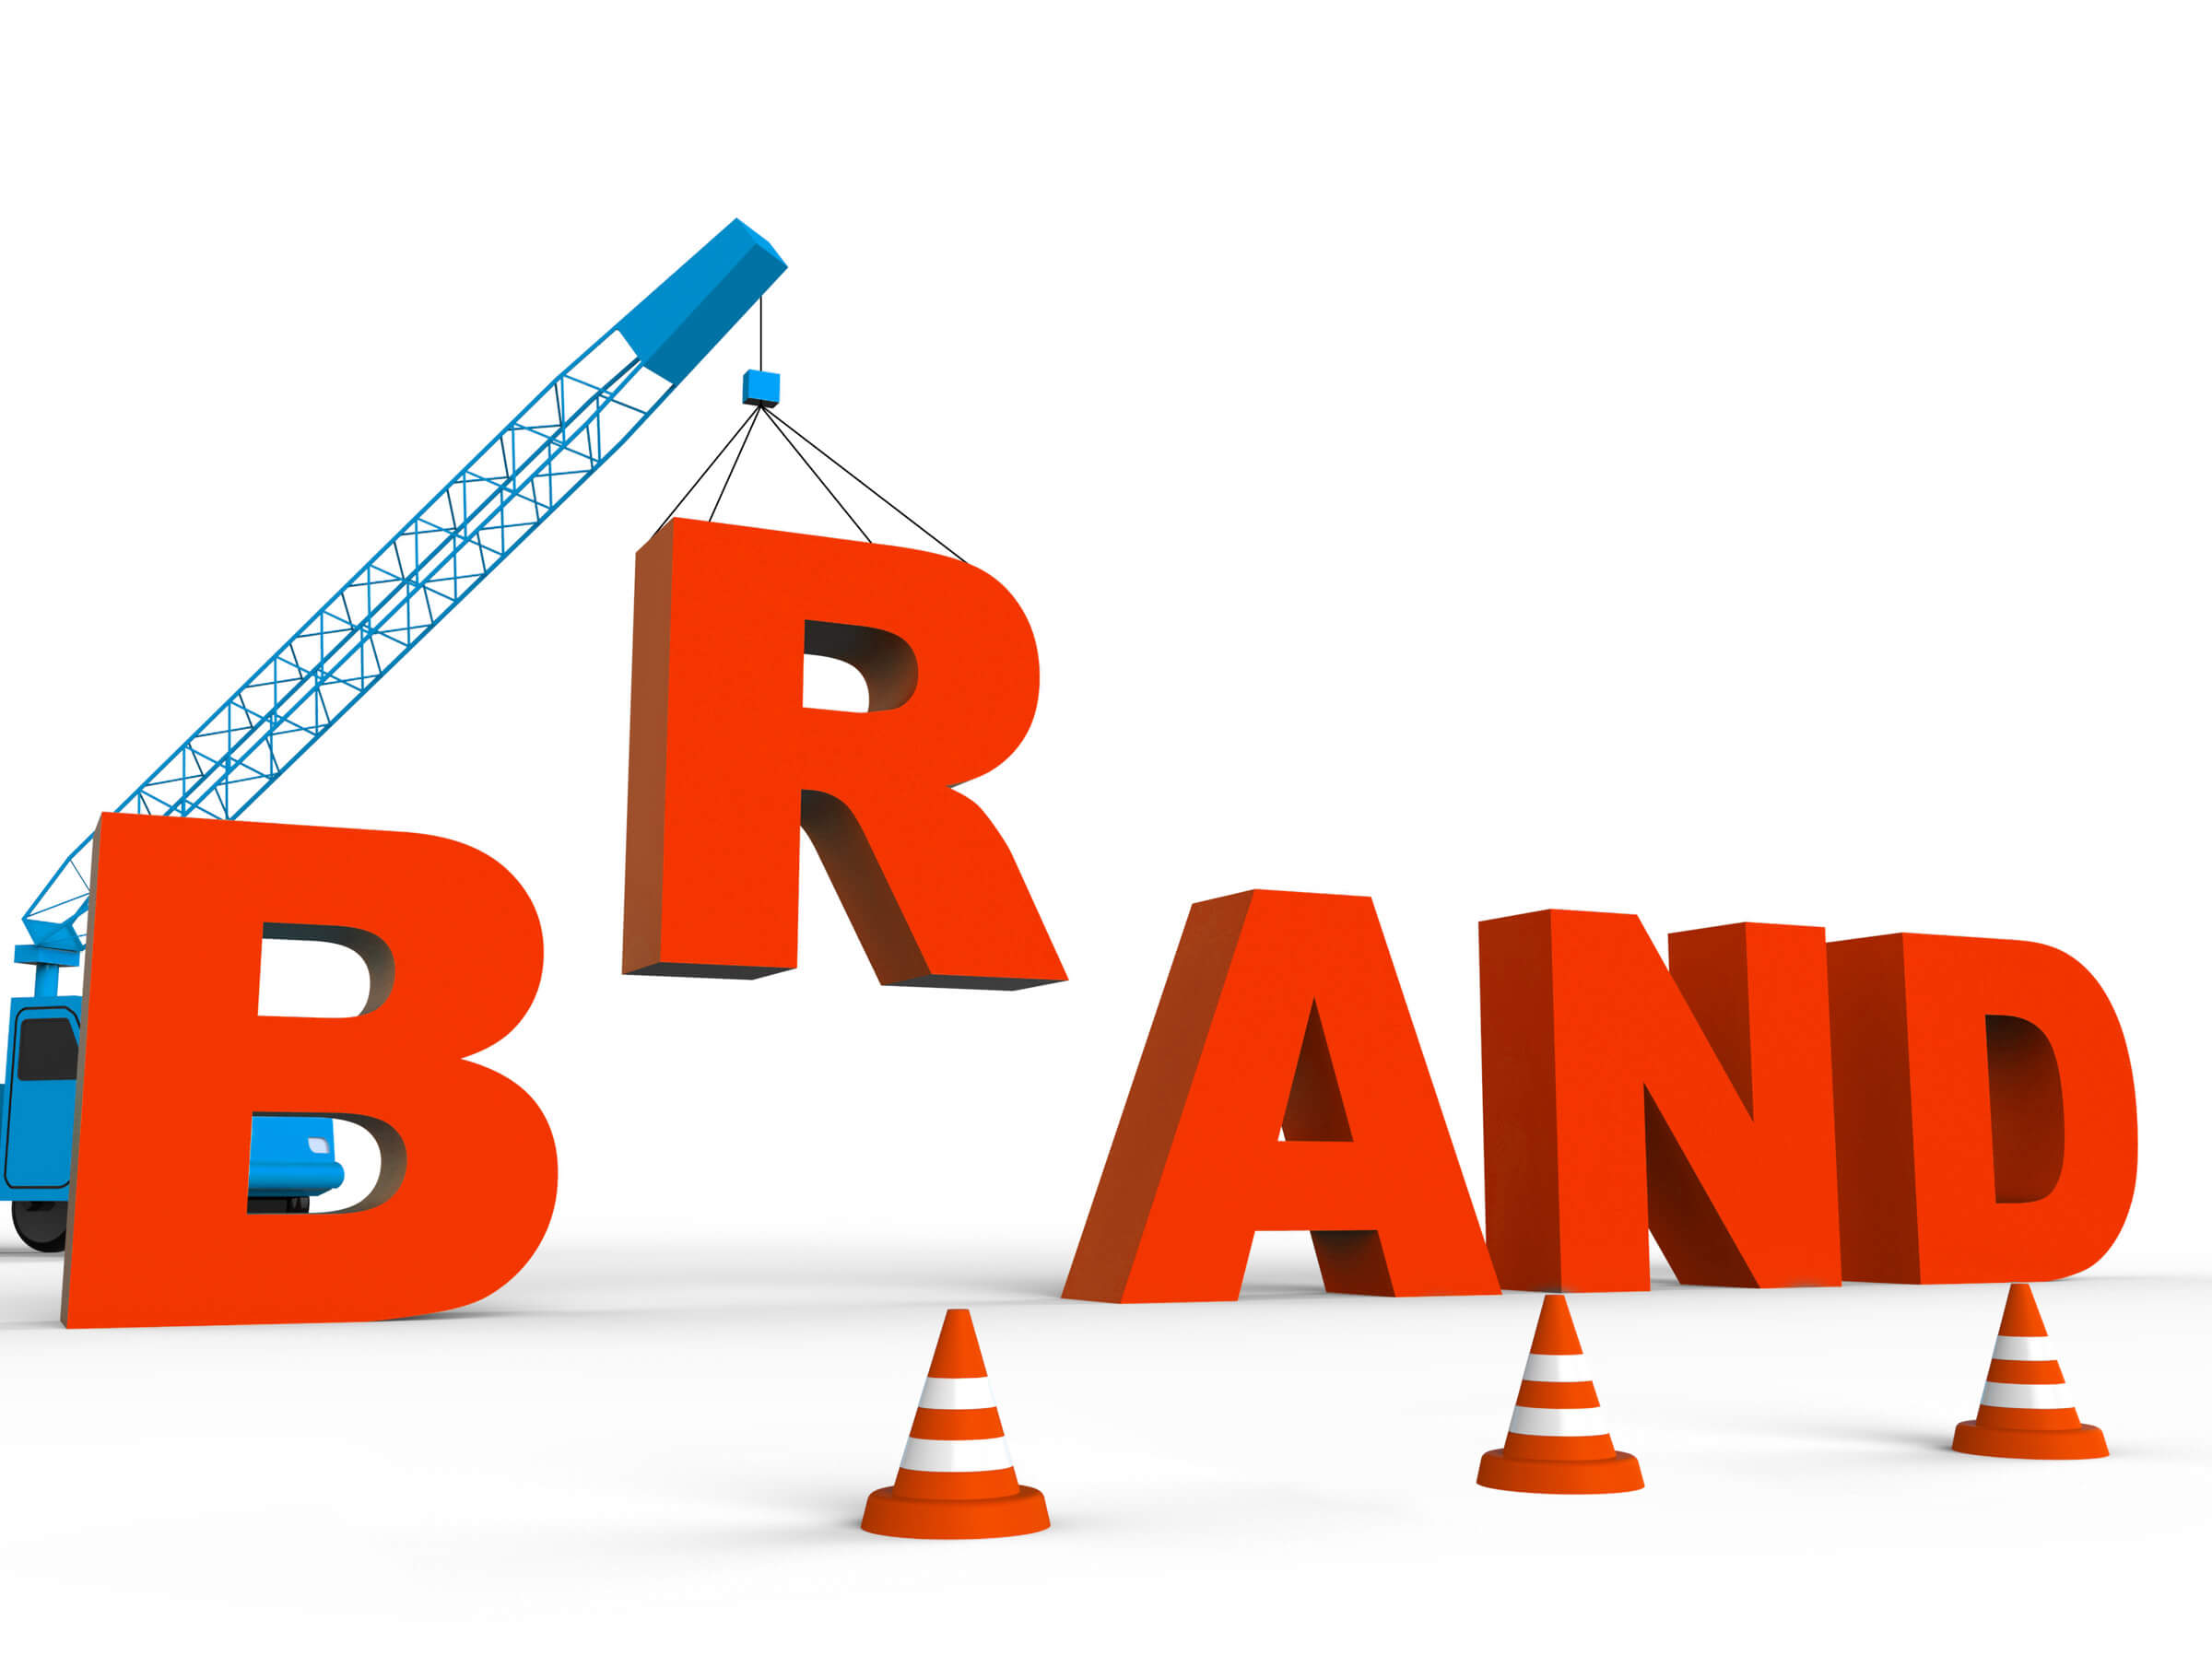 Brand building leads to brand heaven or brand hell